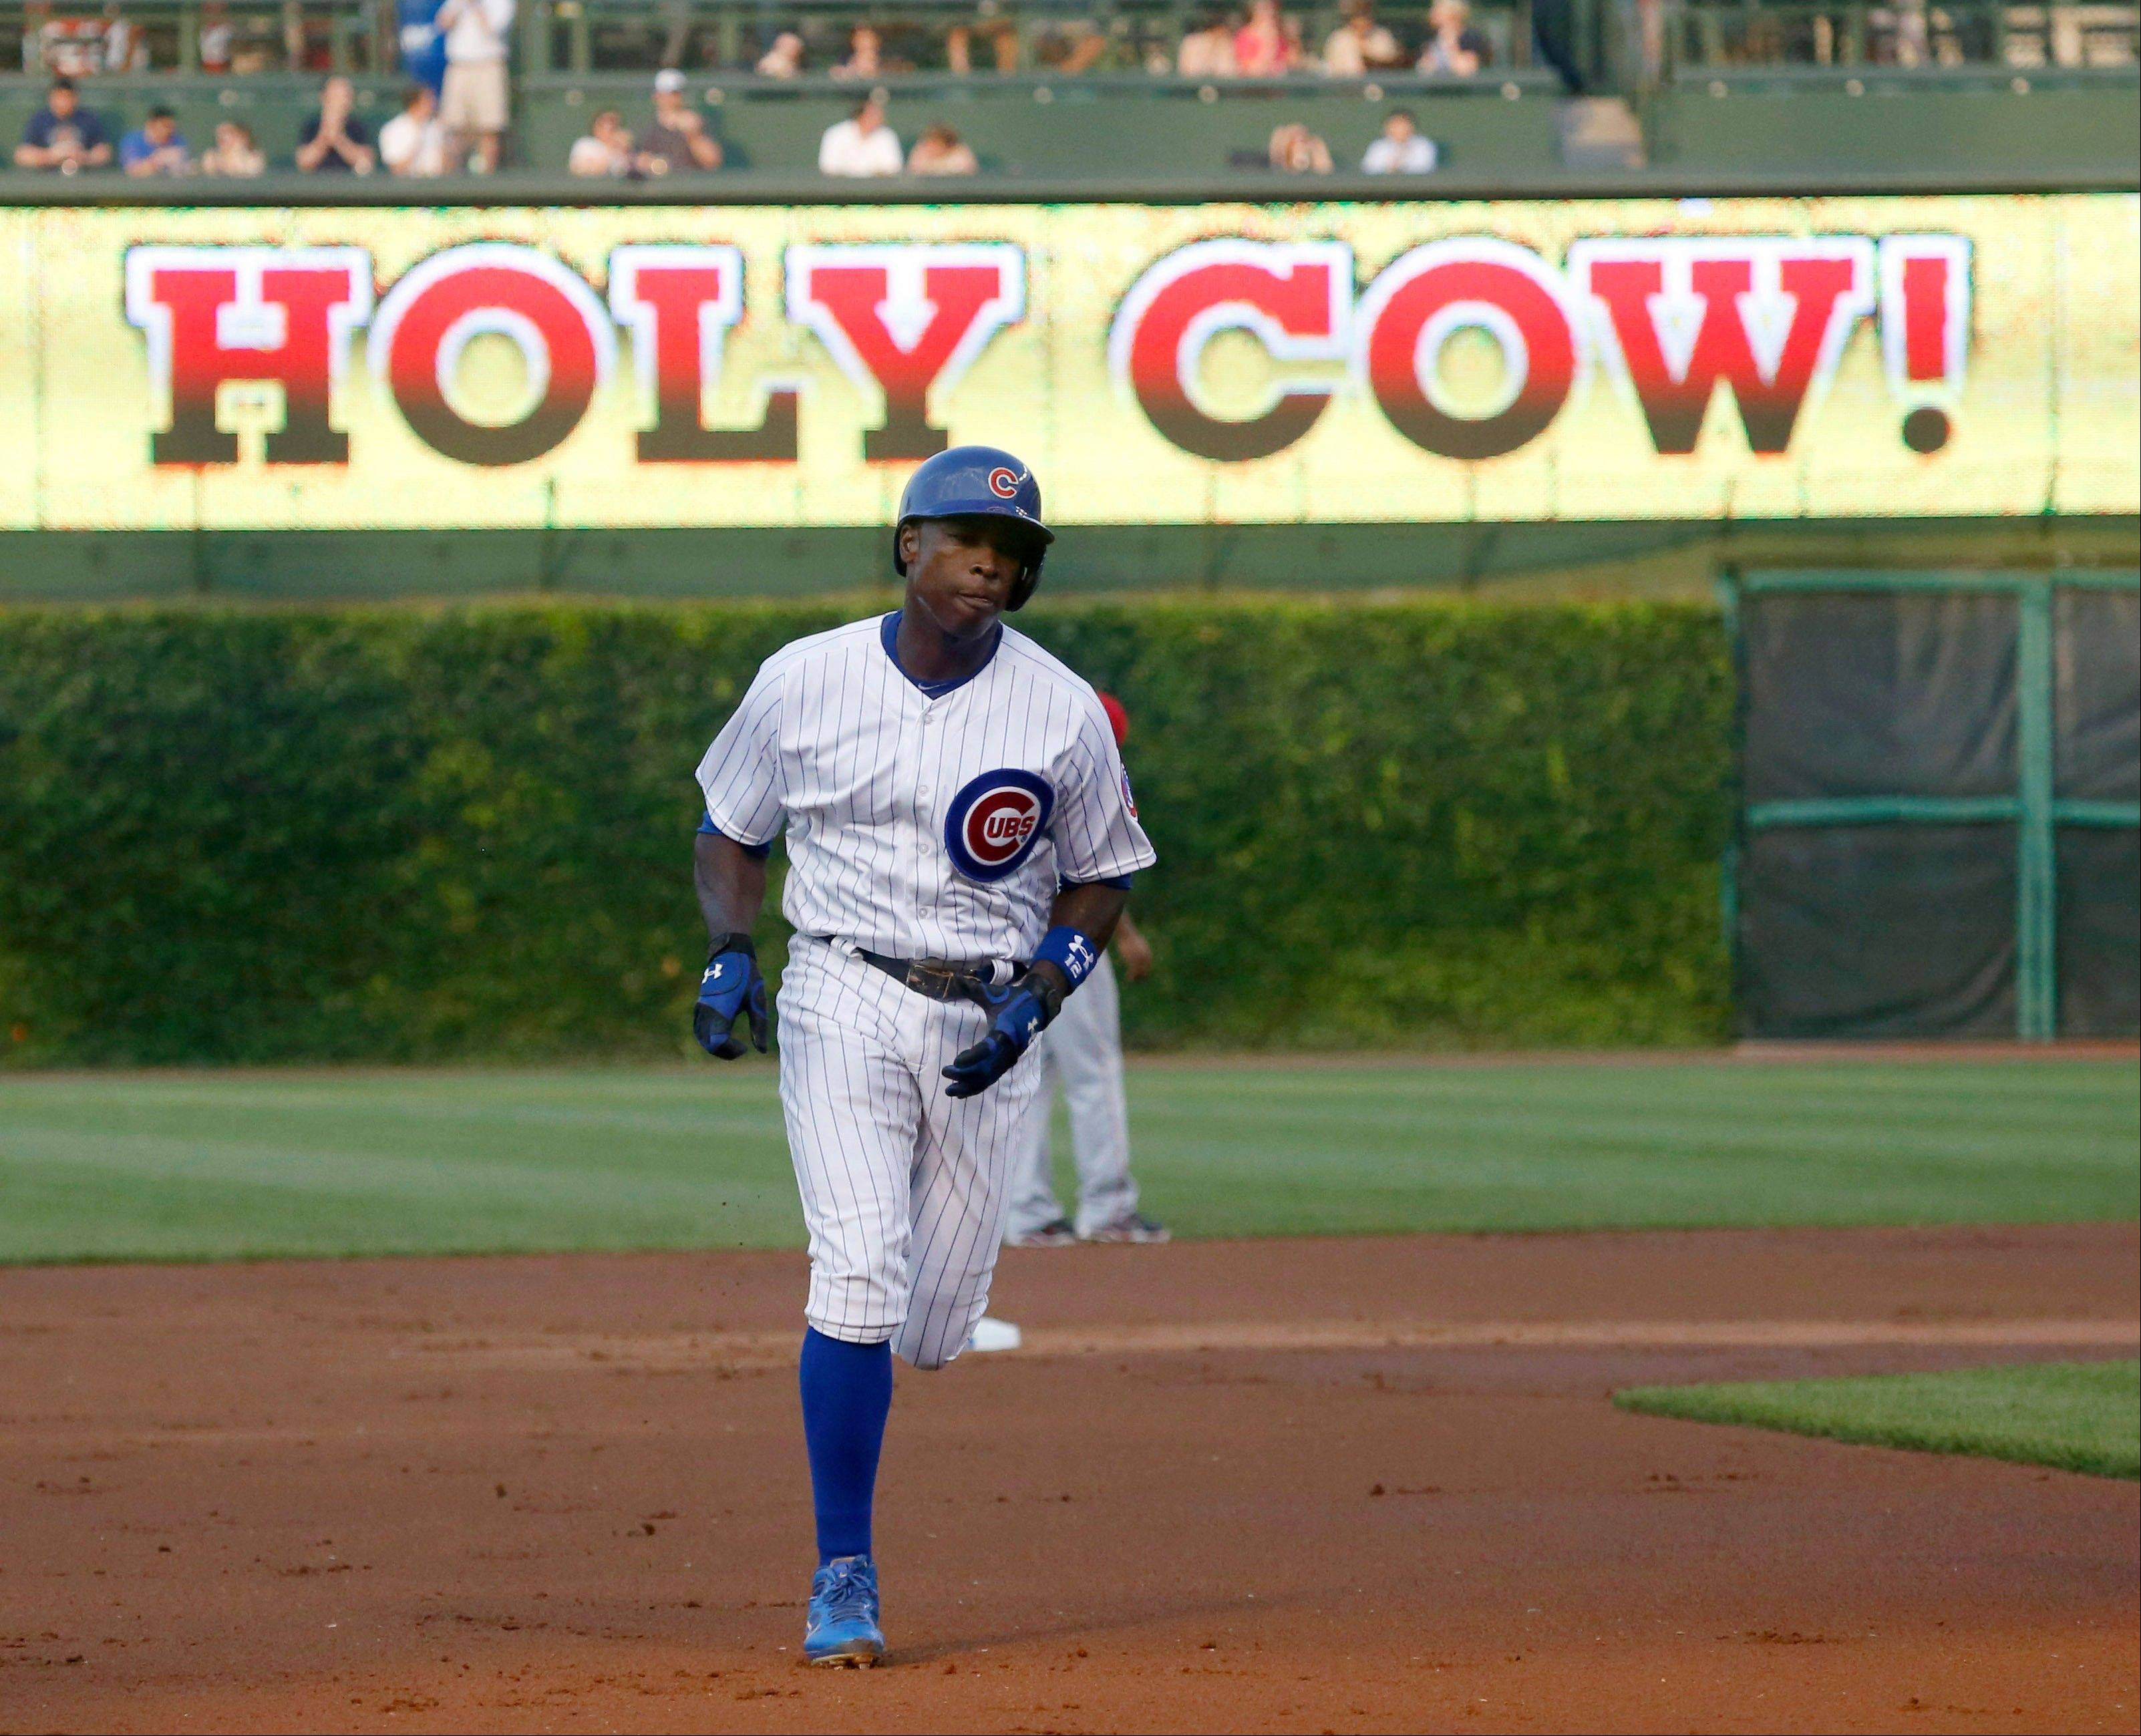 The Cubs' Alfonso Soriano rounds the bases after hitting his first of 2 home runs Tuesday night at Wrigley Field.